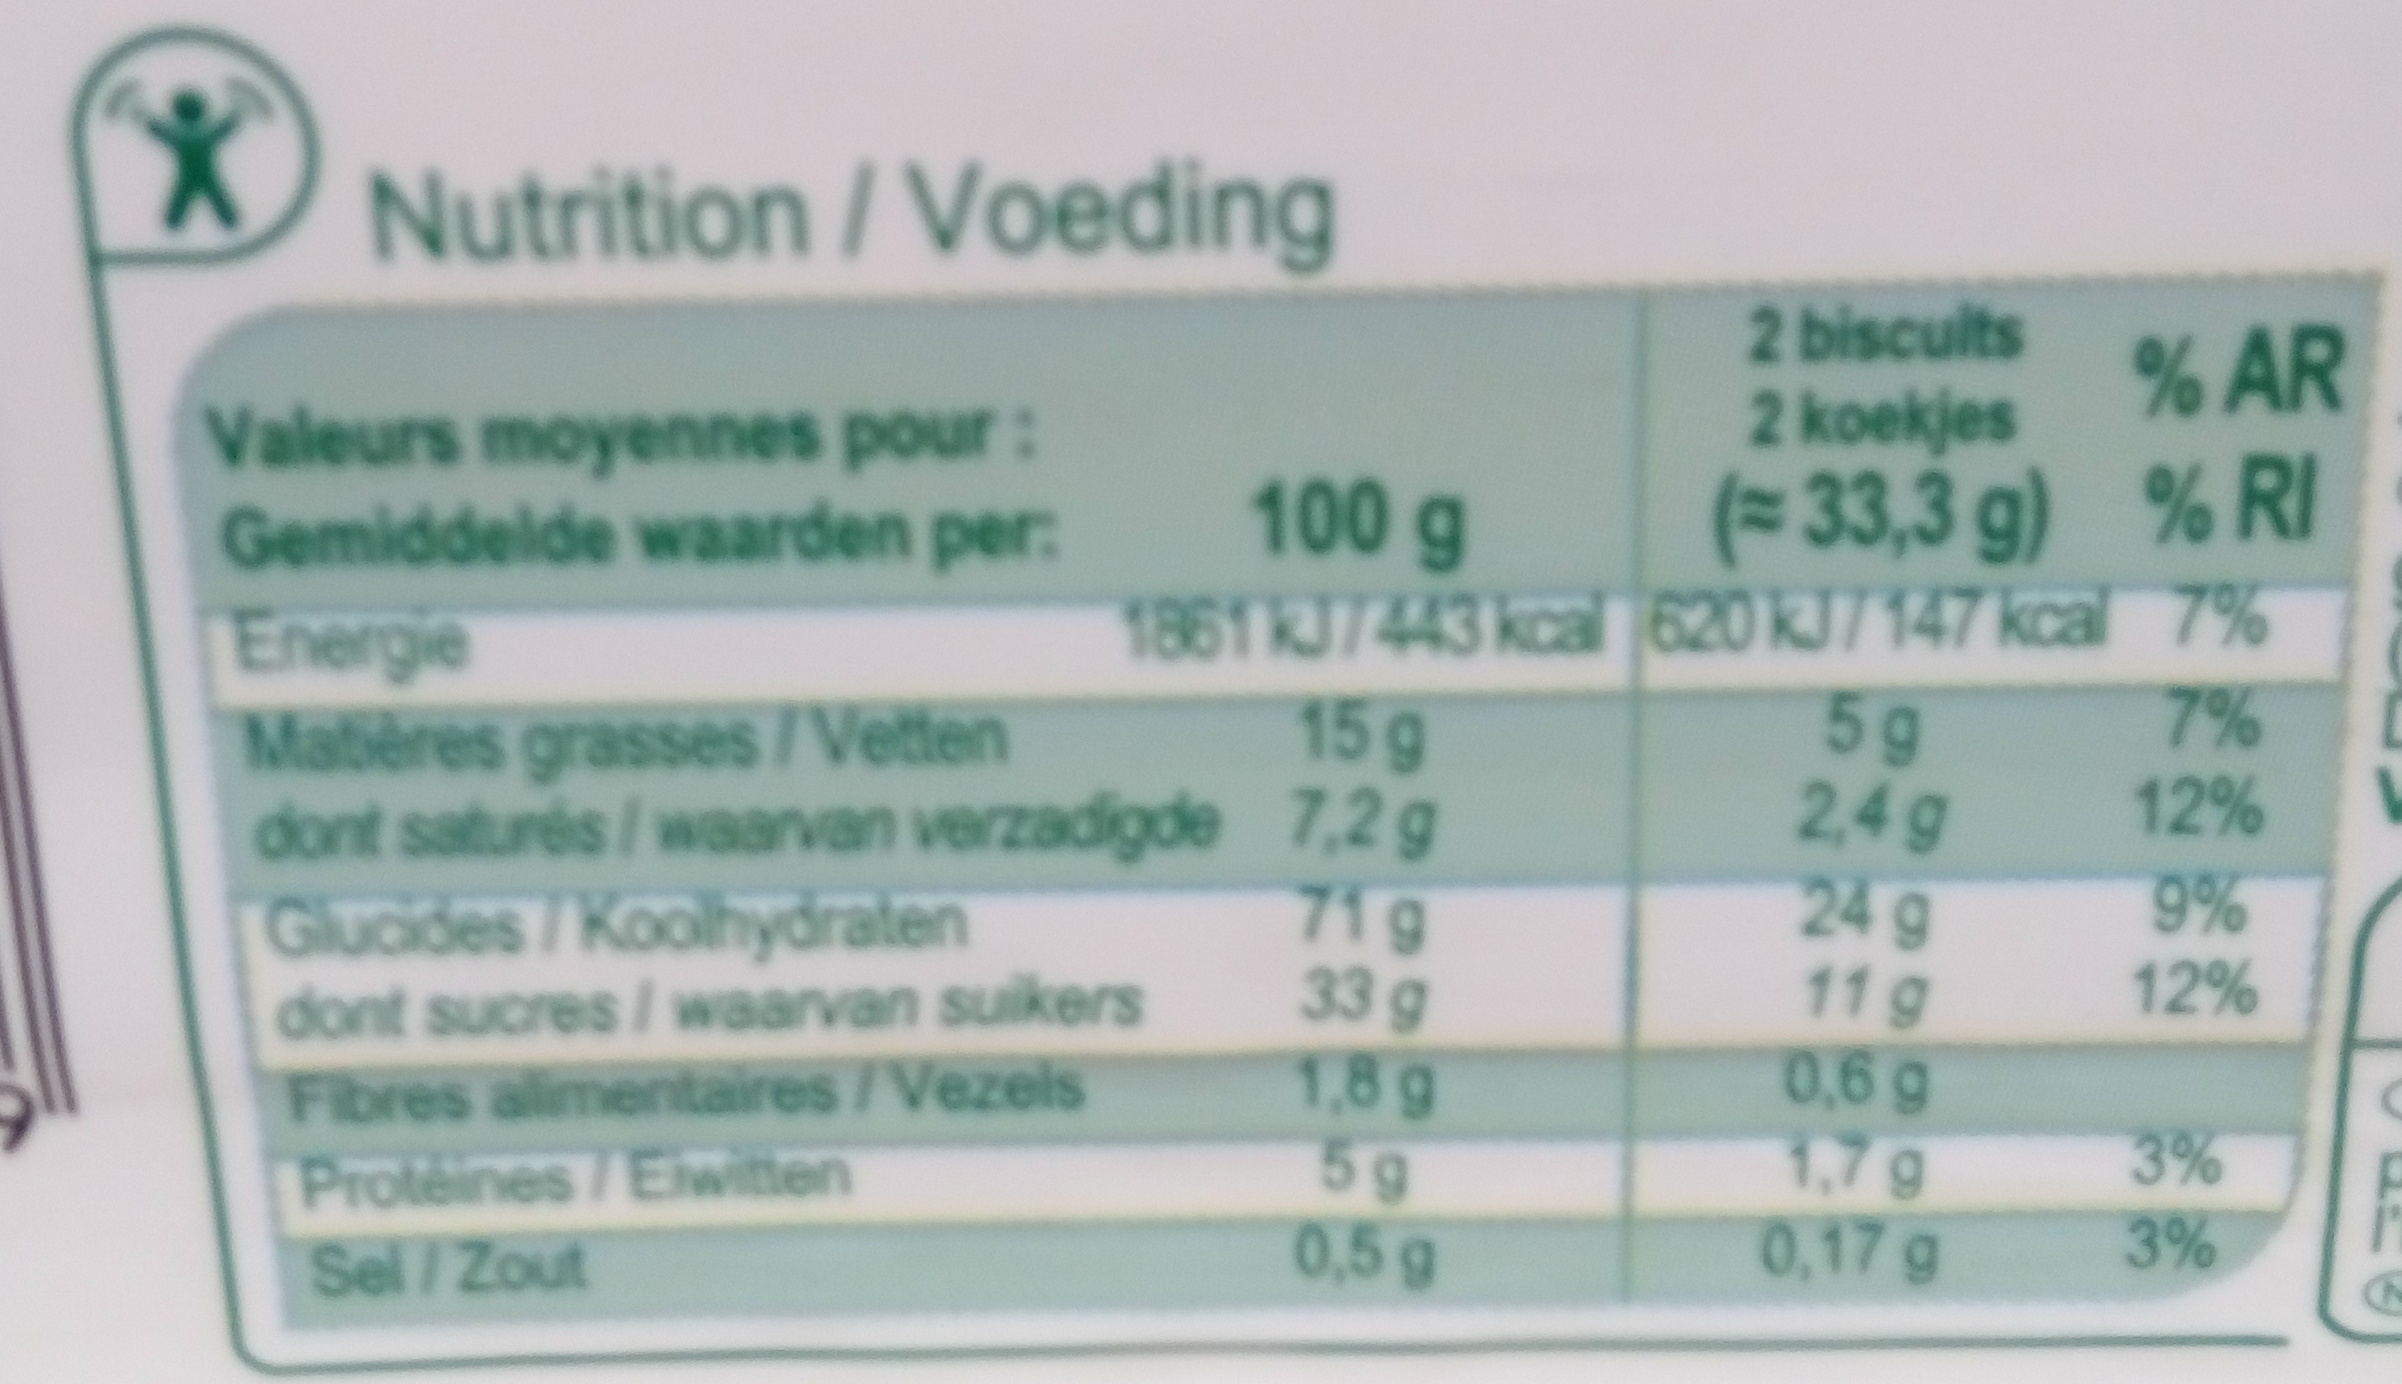 Tartelettes - Nutrition facts